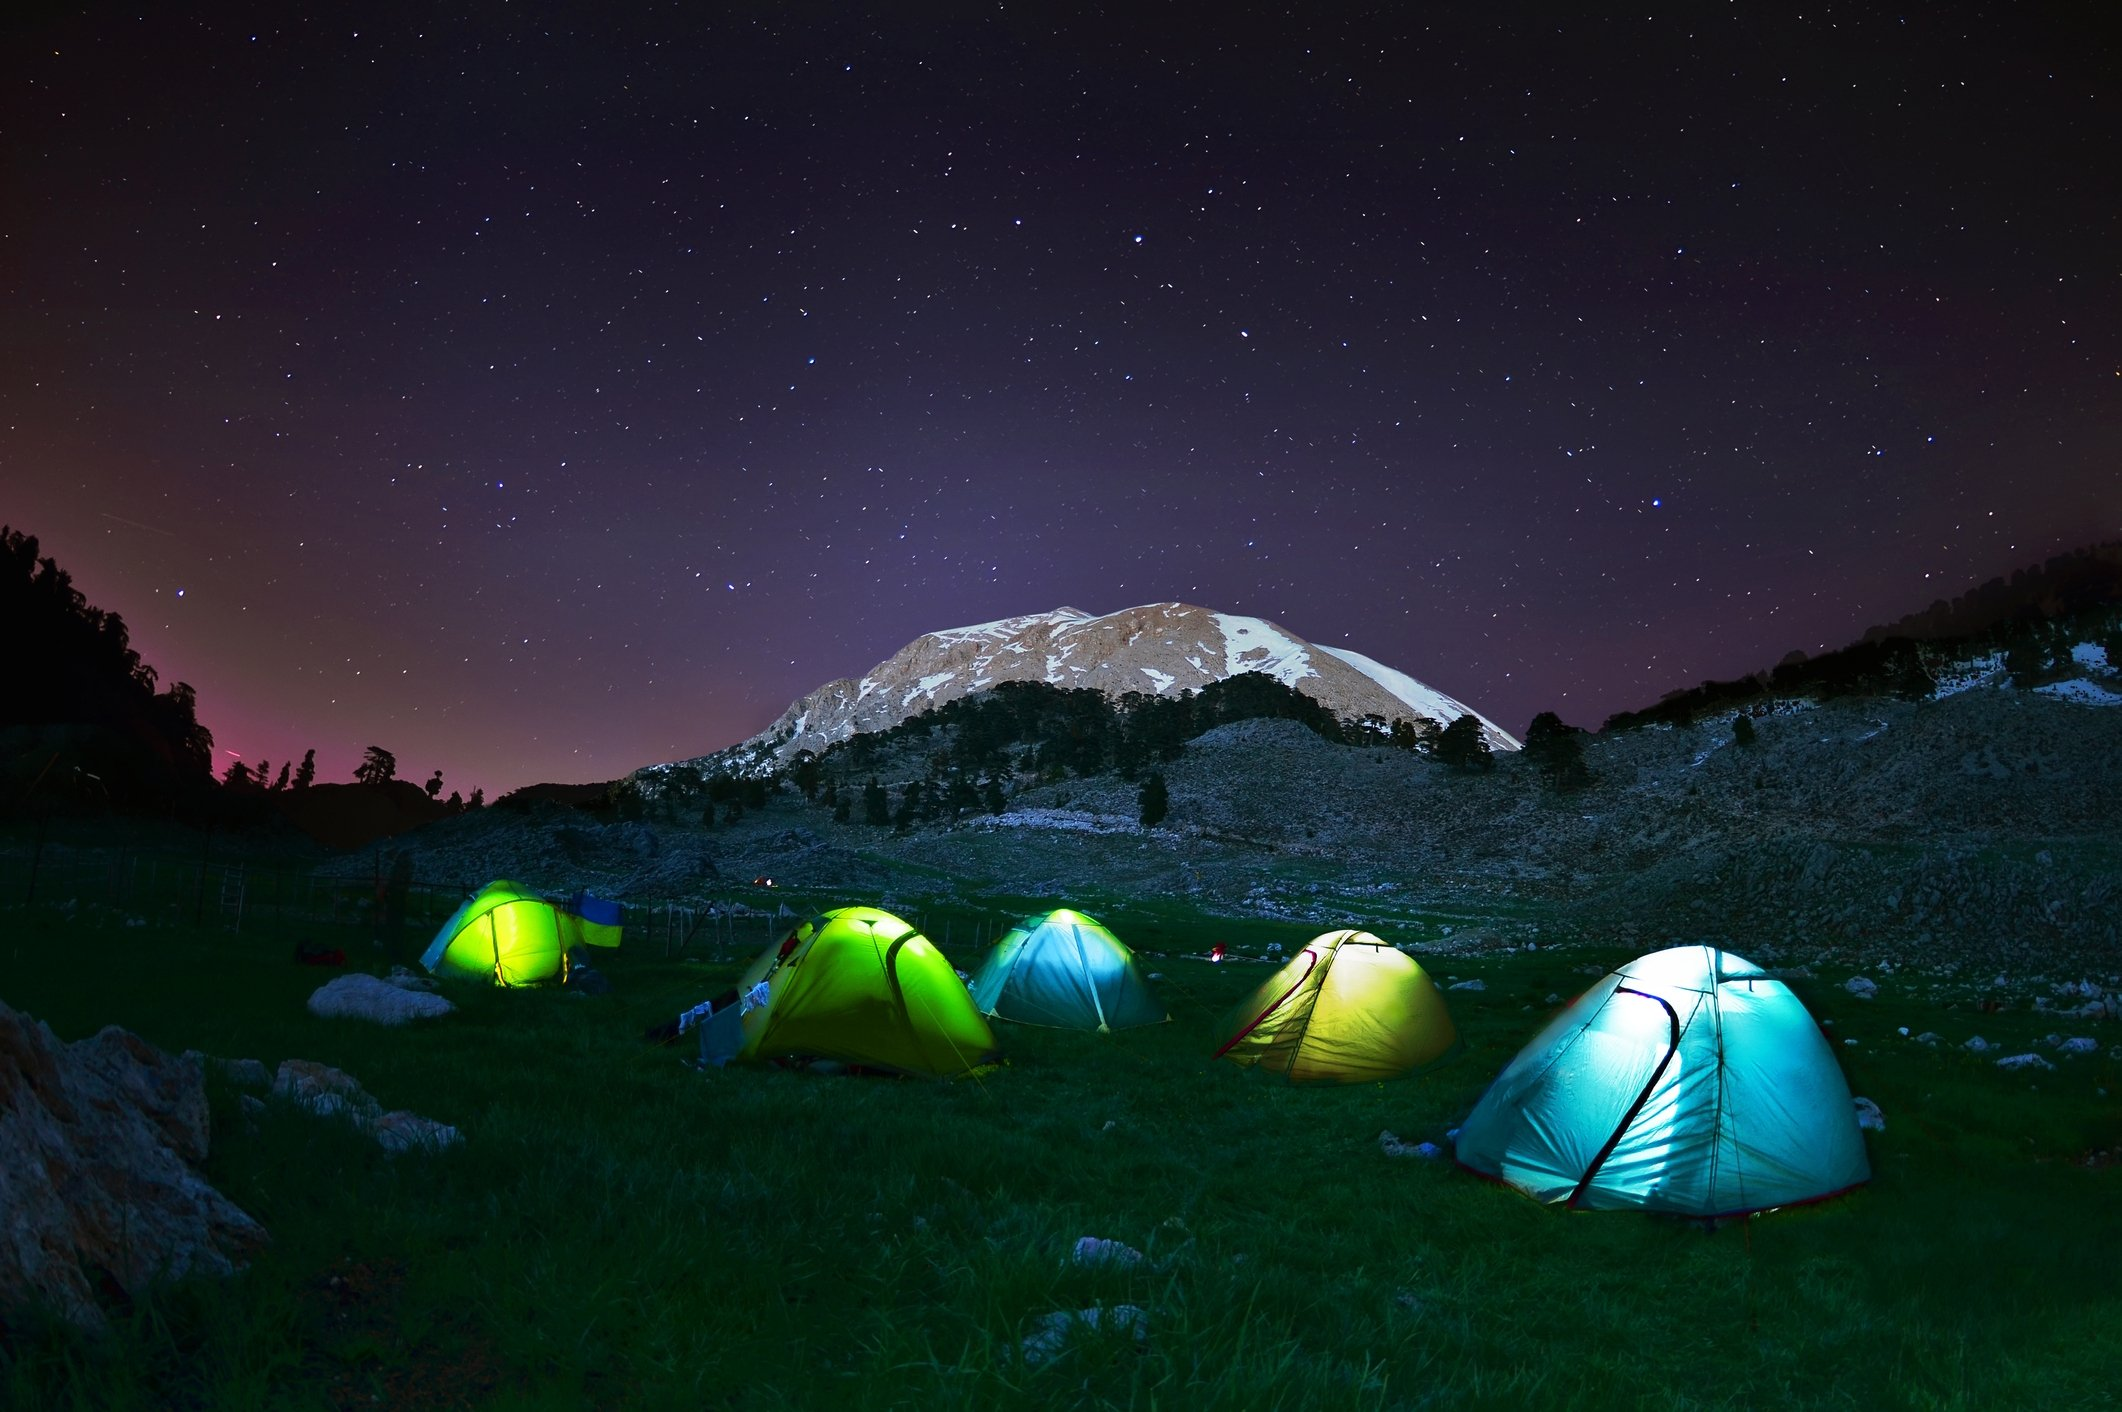 Away from the city lights, camping under the starry night sky is a great way to escape the stress of daily life. (iStock Photo)